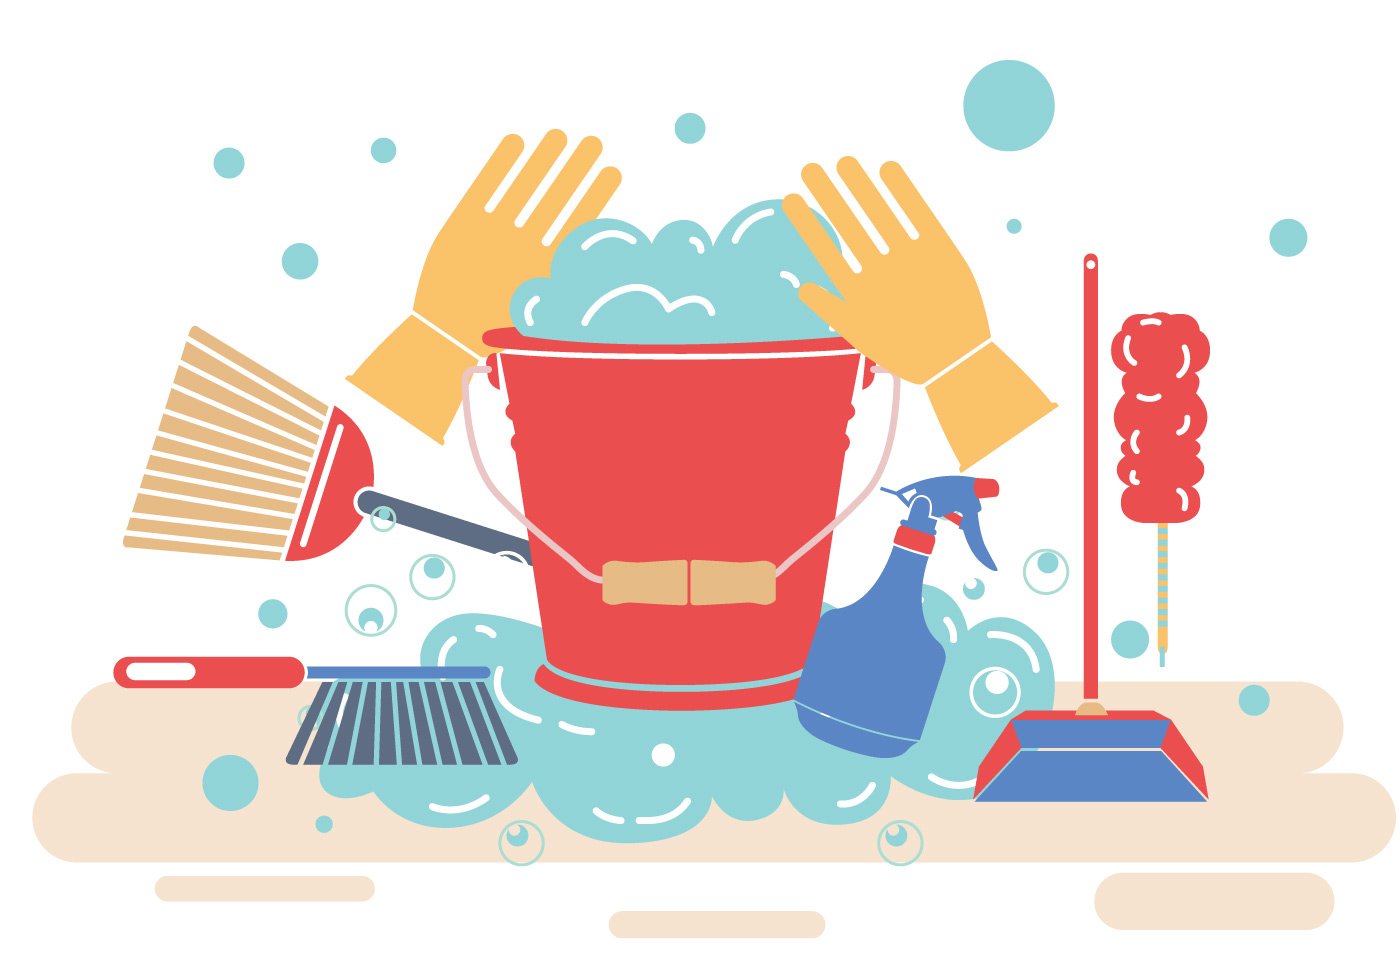 Spring-Cleaning-Vector